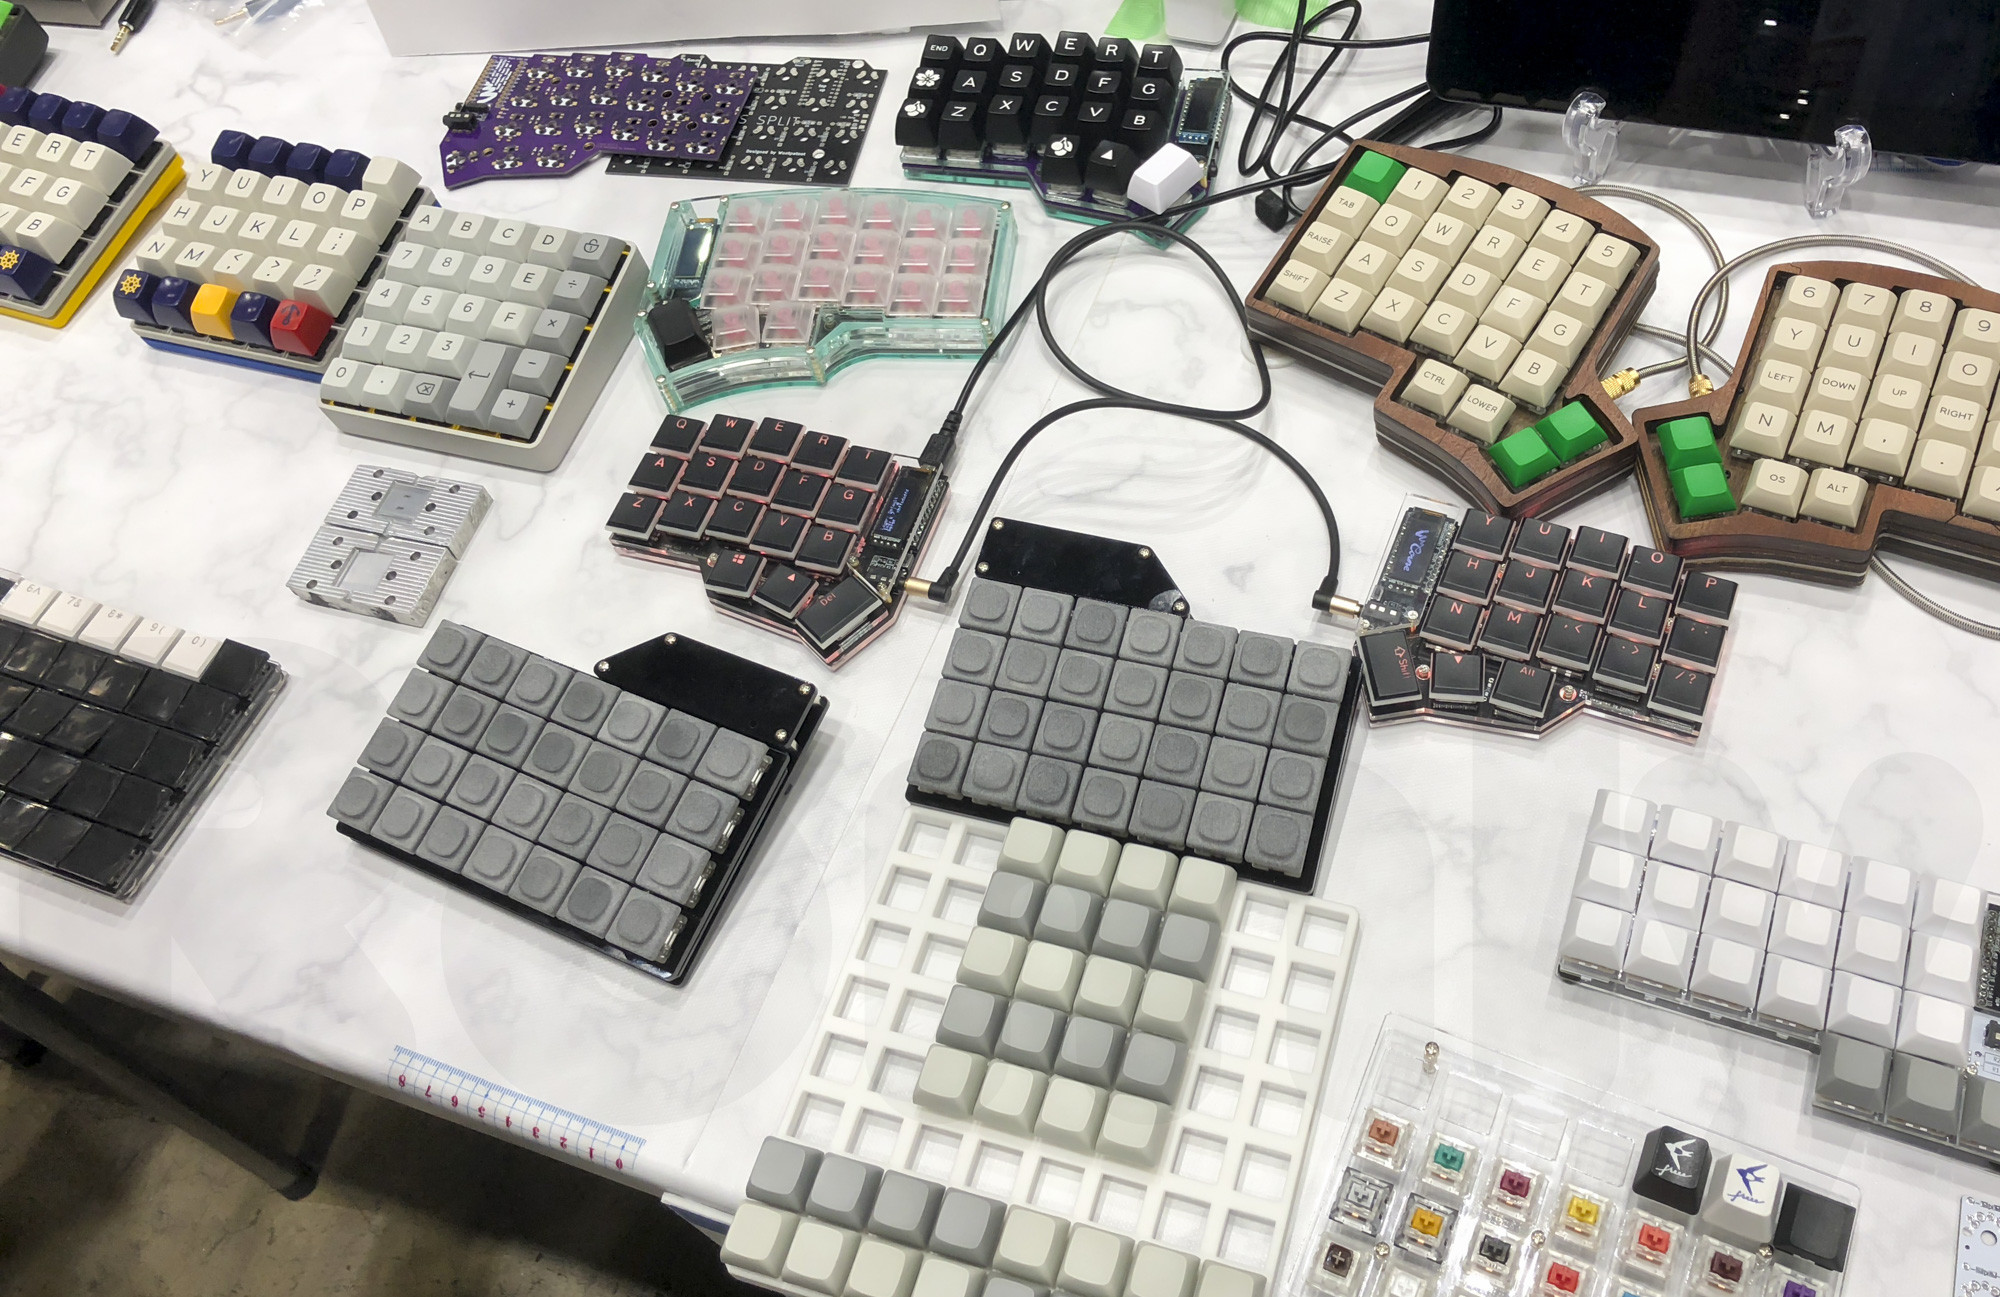 Self Made Keyboard in Japan 1